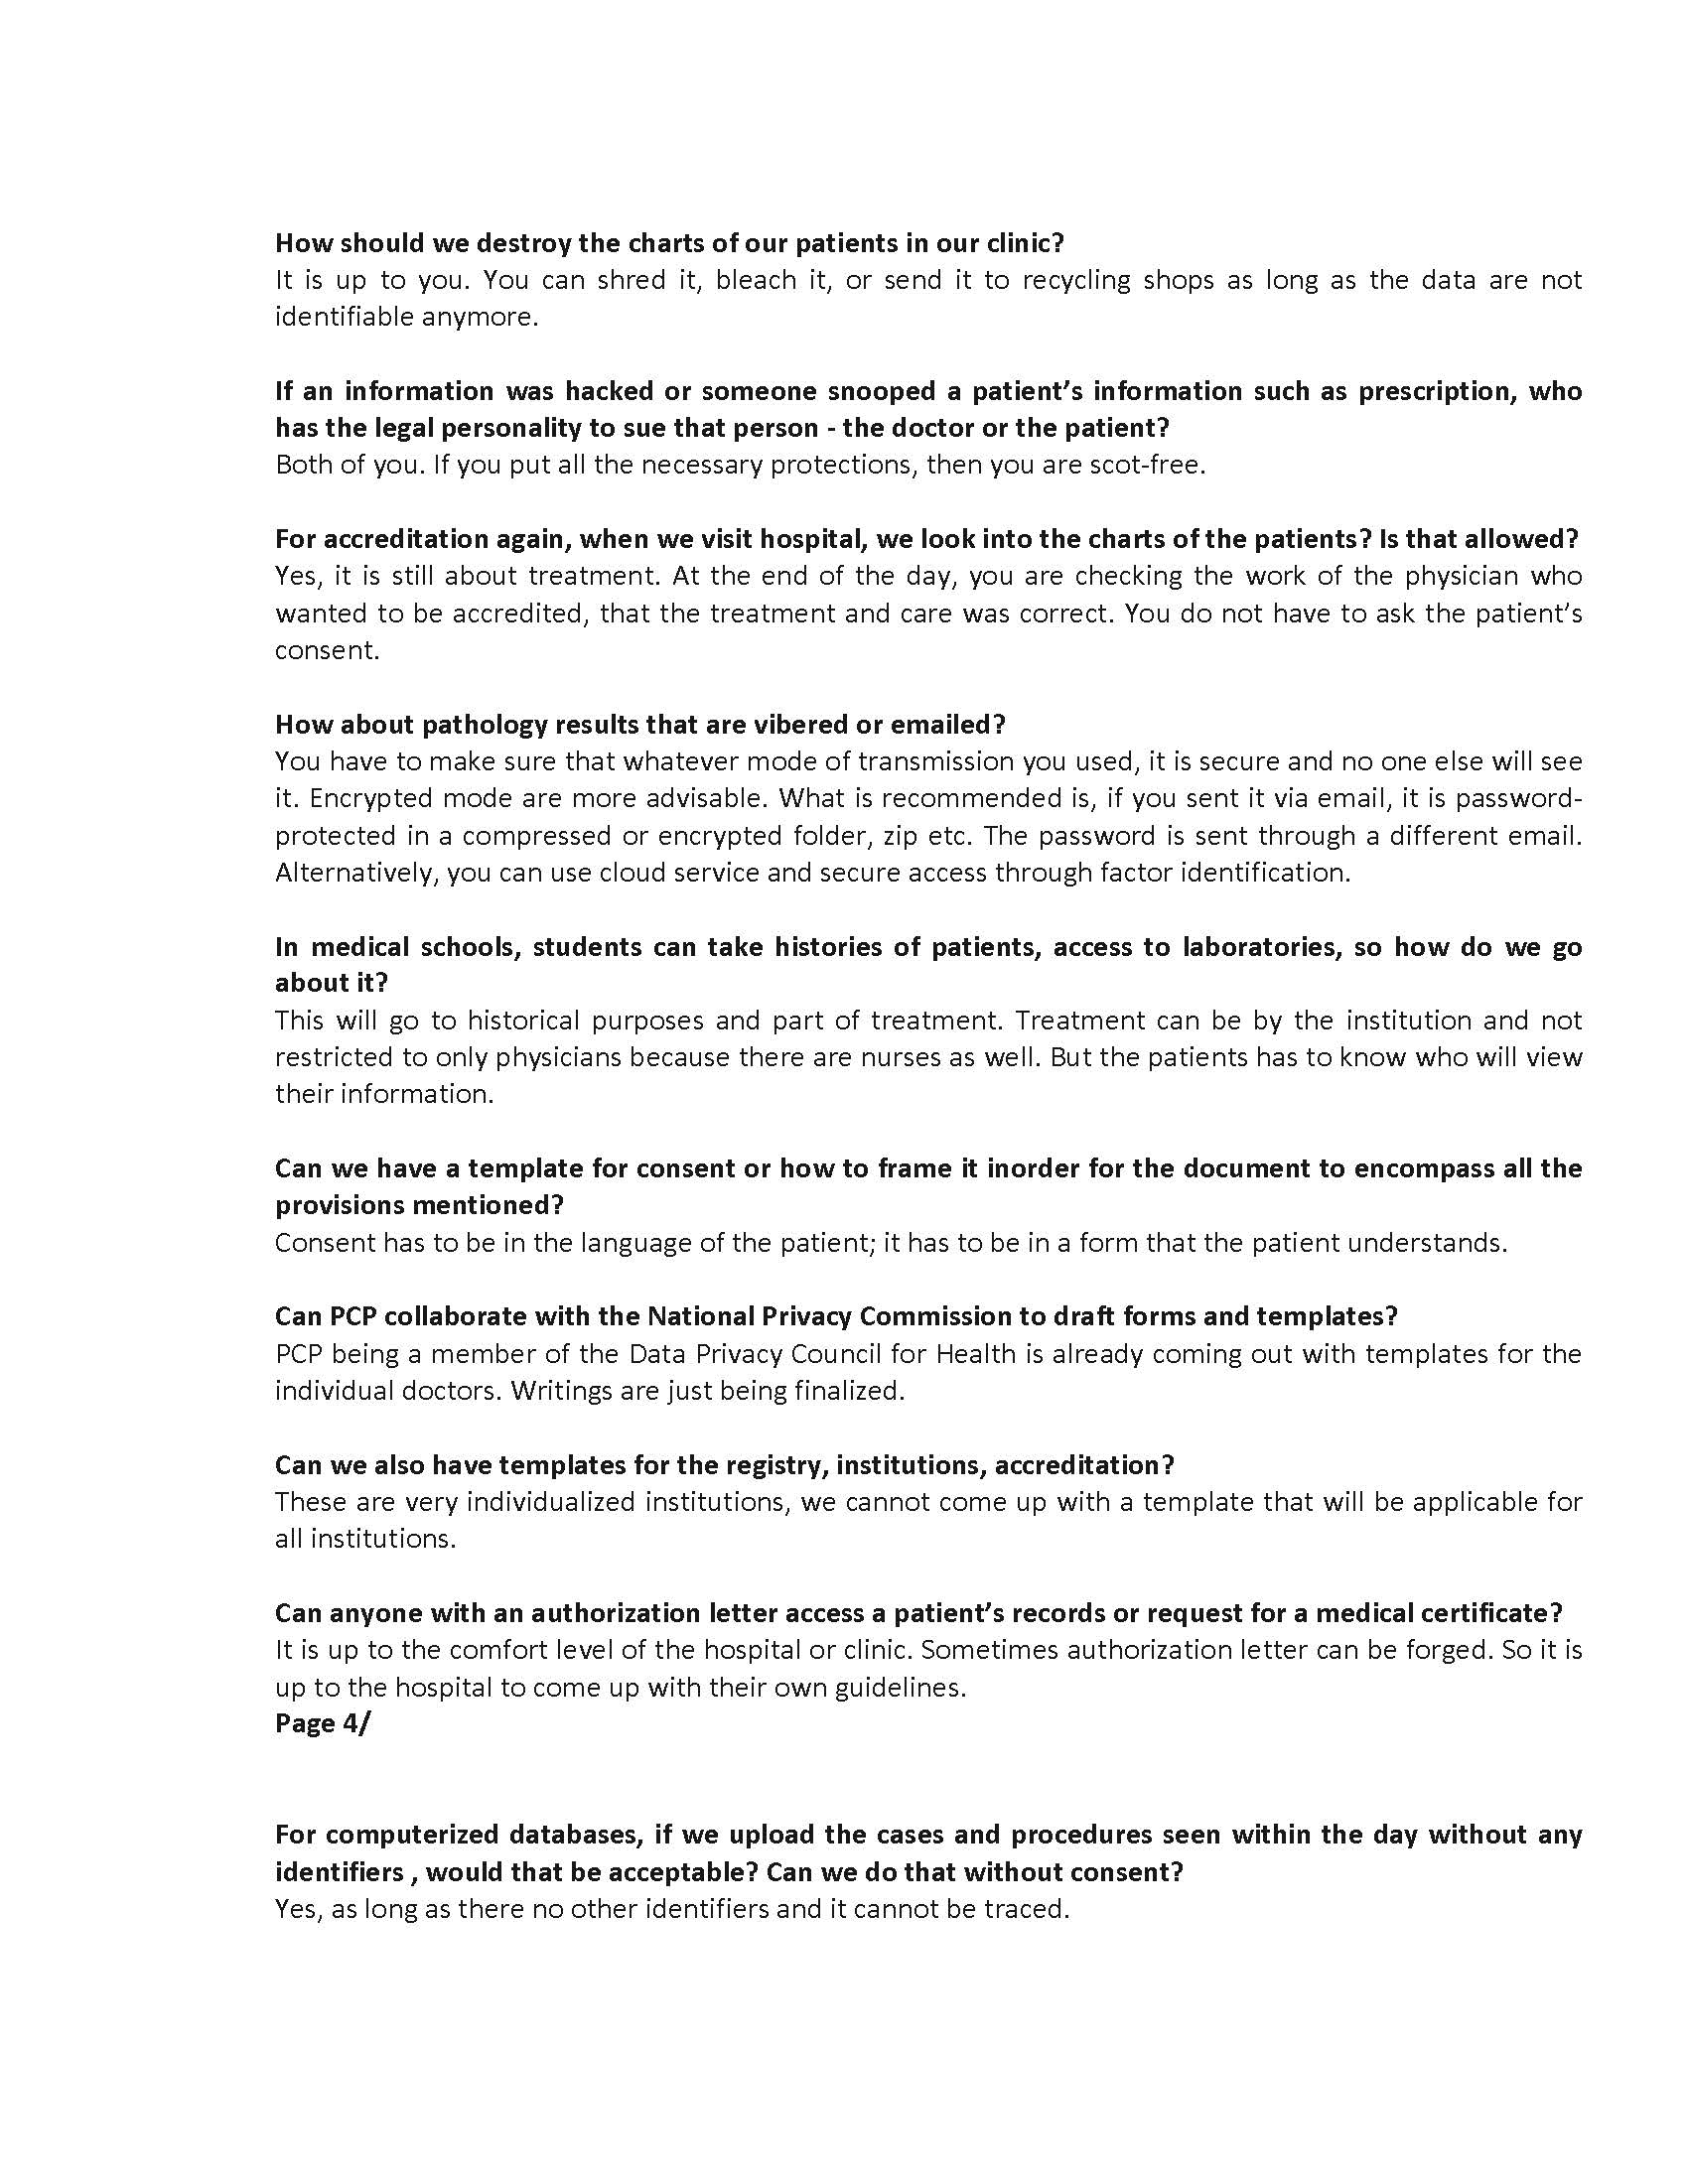 QnA Forum on Data Privacy 1 Page 4